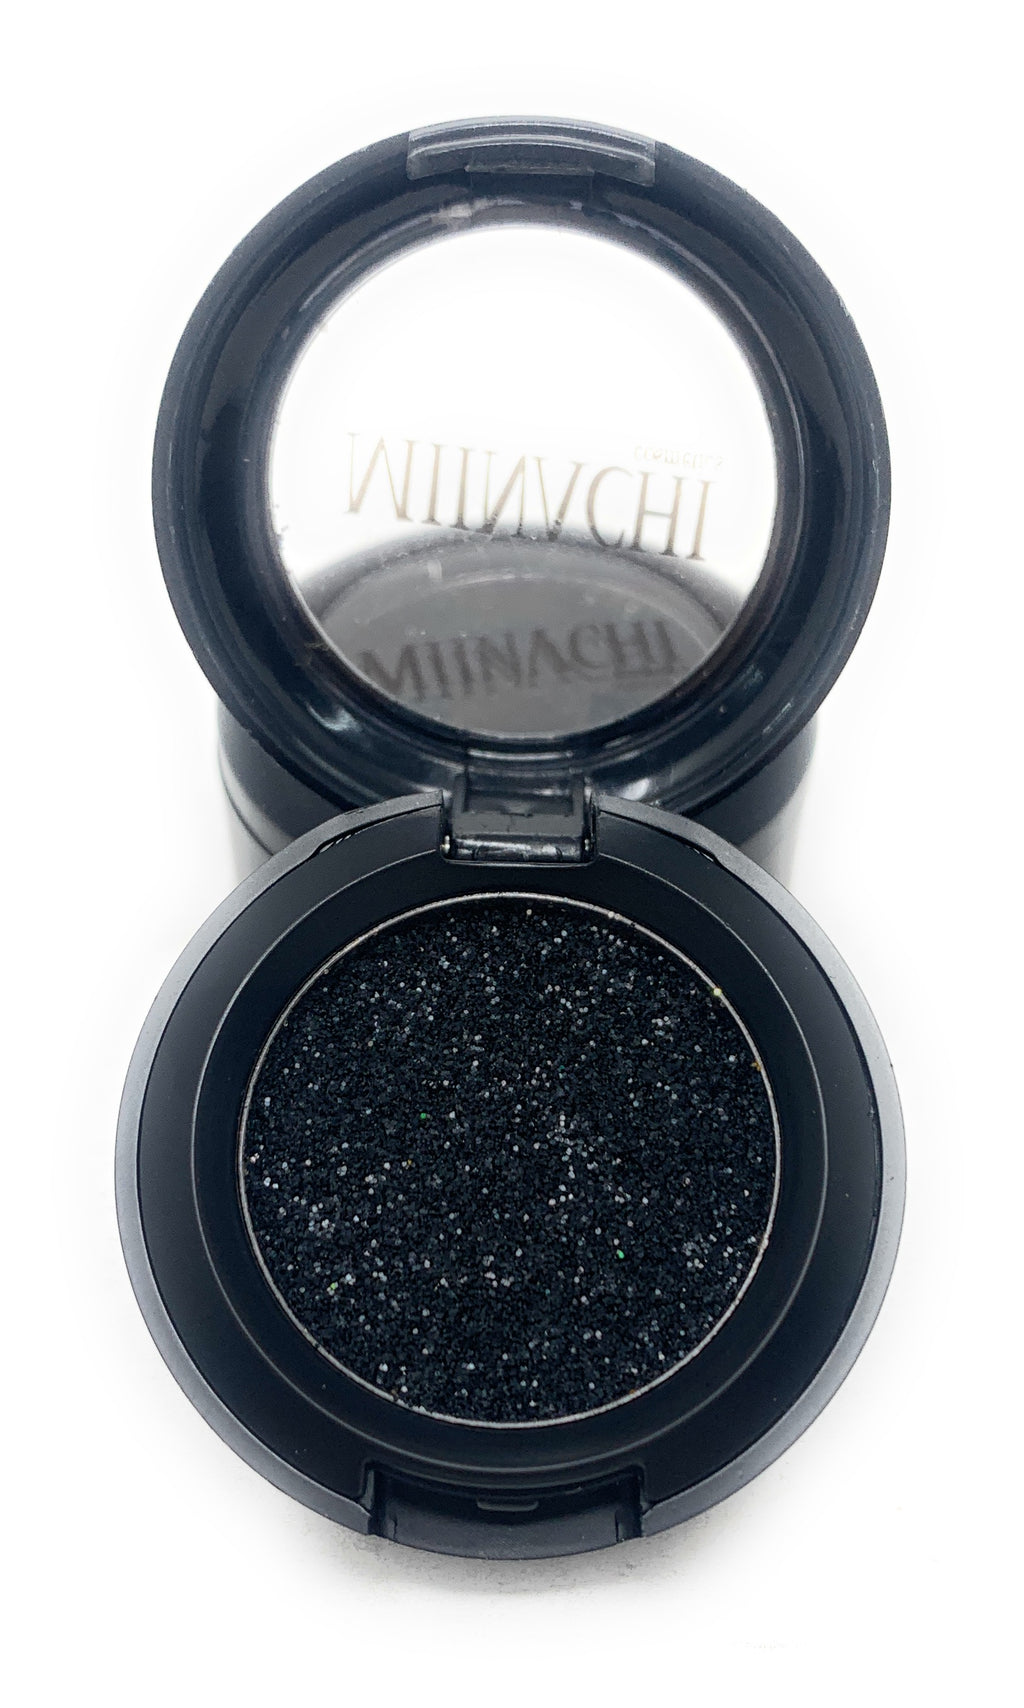 Single Pressed Glitter in the shade Dark Knight, No Glue Needed, In Compact, Pigmented, No Fall Out, Glitter, Cosmetic Grade Glitter